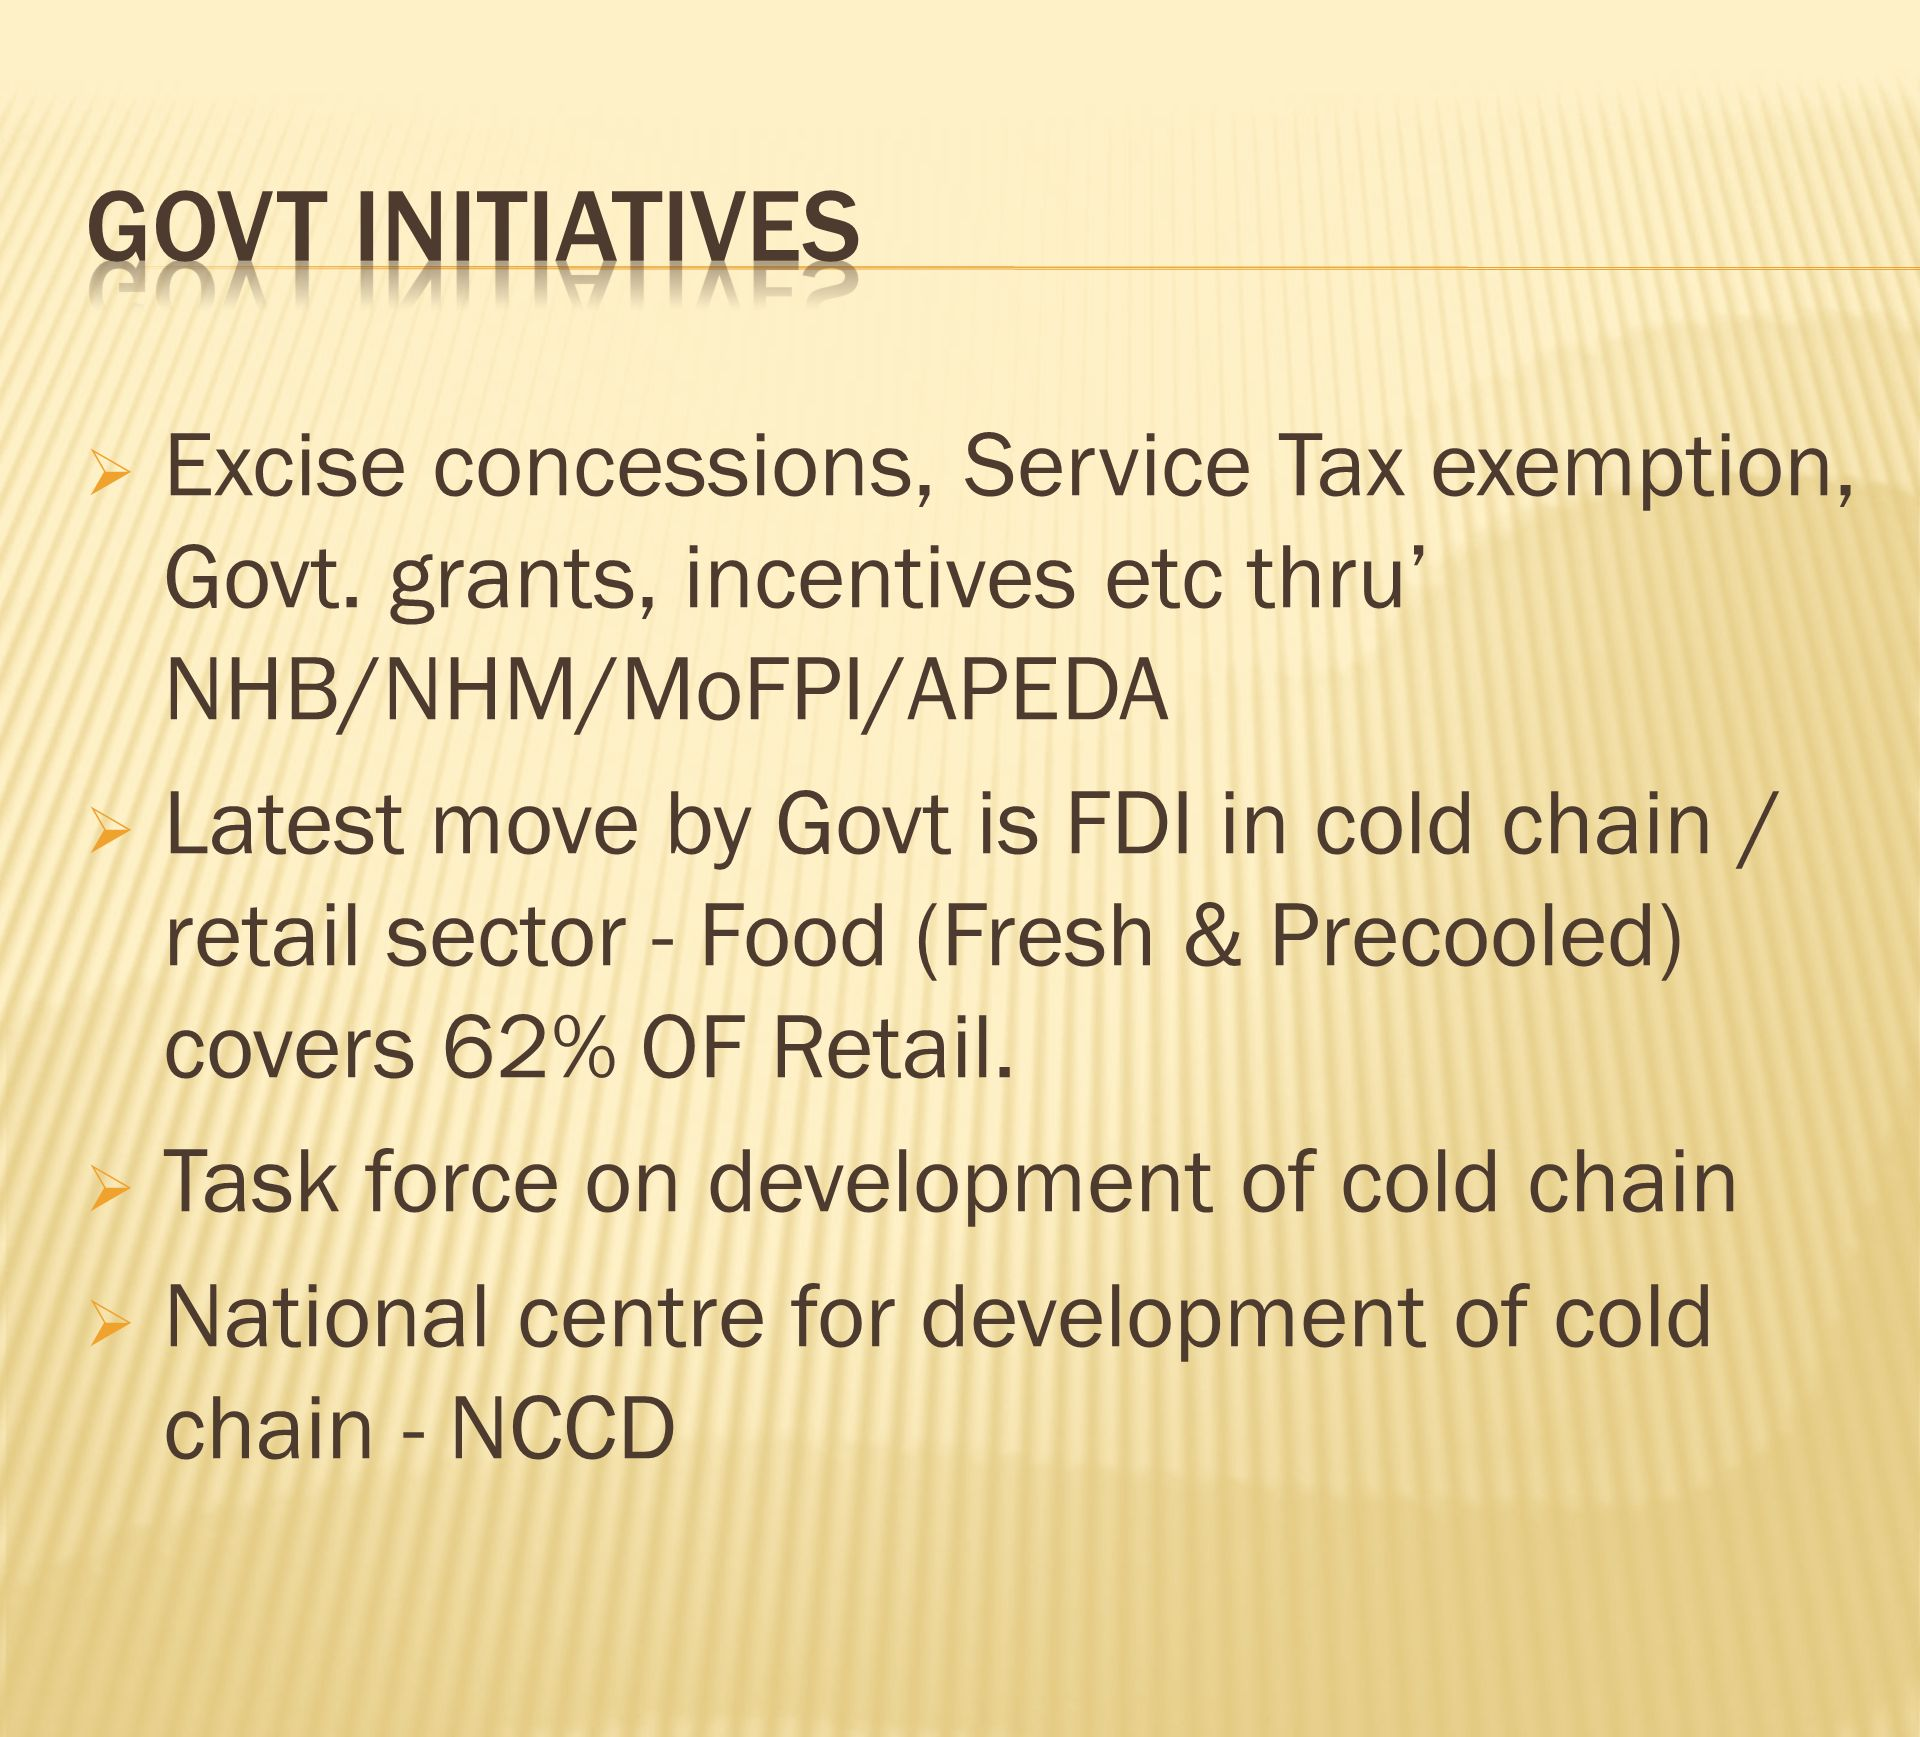 Govt initiatives Excise concessions, Service Tax exemption, Govt. grants, incentives etc thru' NHB/NHM/MoFPI/APEDA.